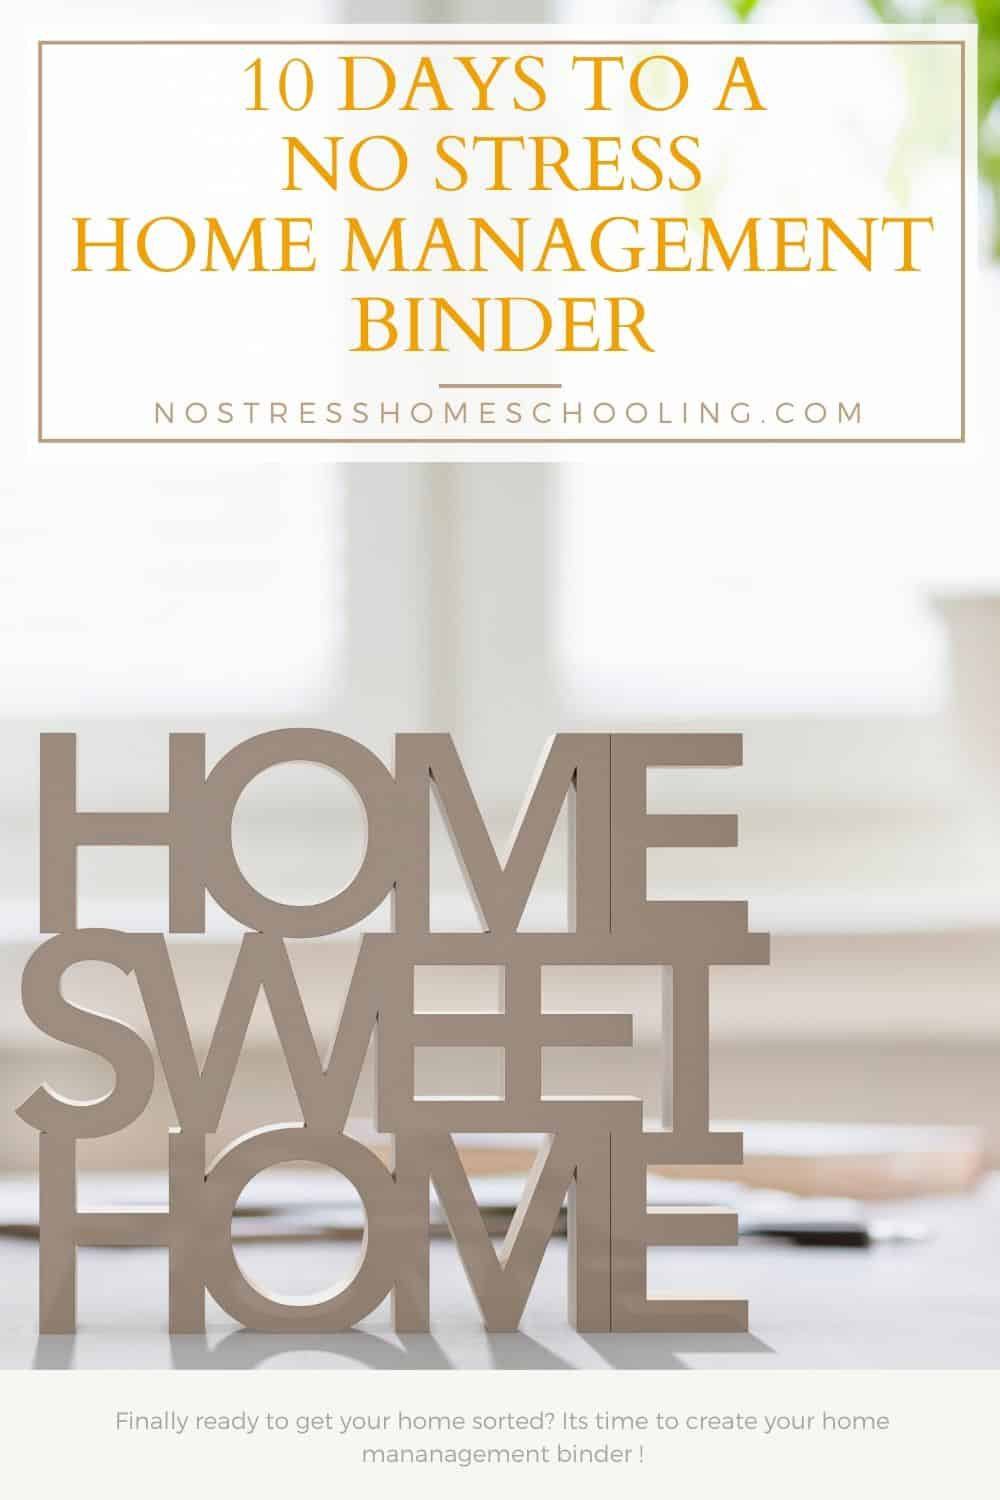 Ready to put together your custom home management binder? This free 10 day series will help you organize your household, finances, and more!